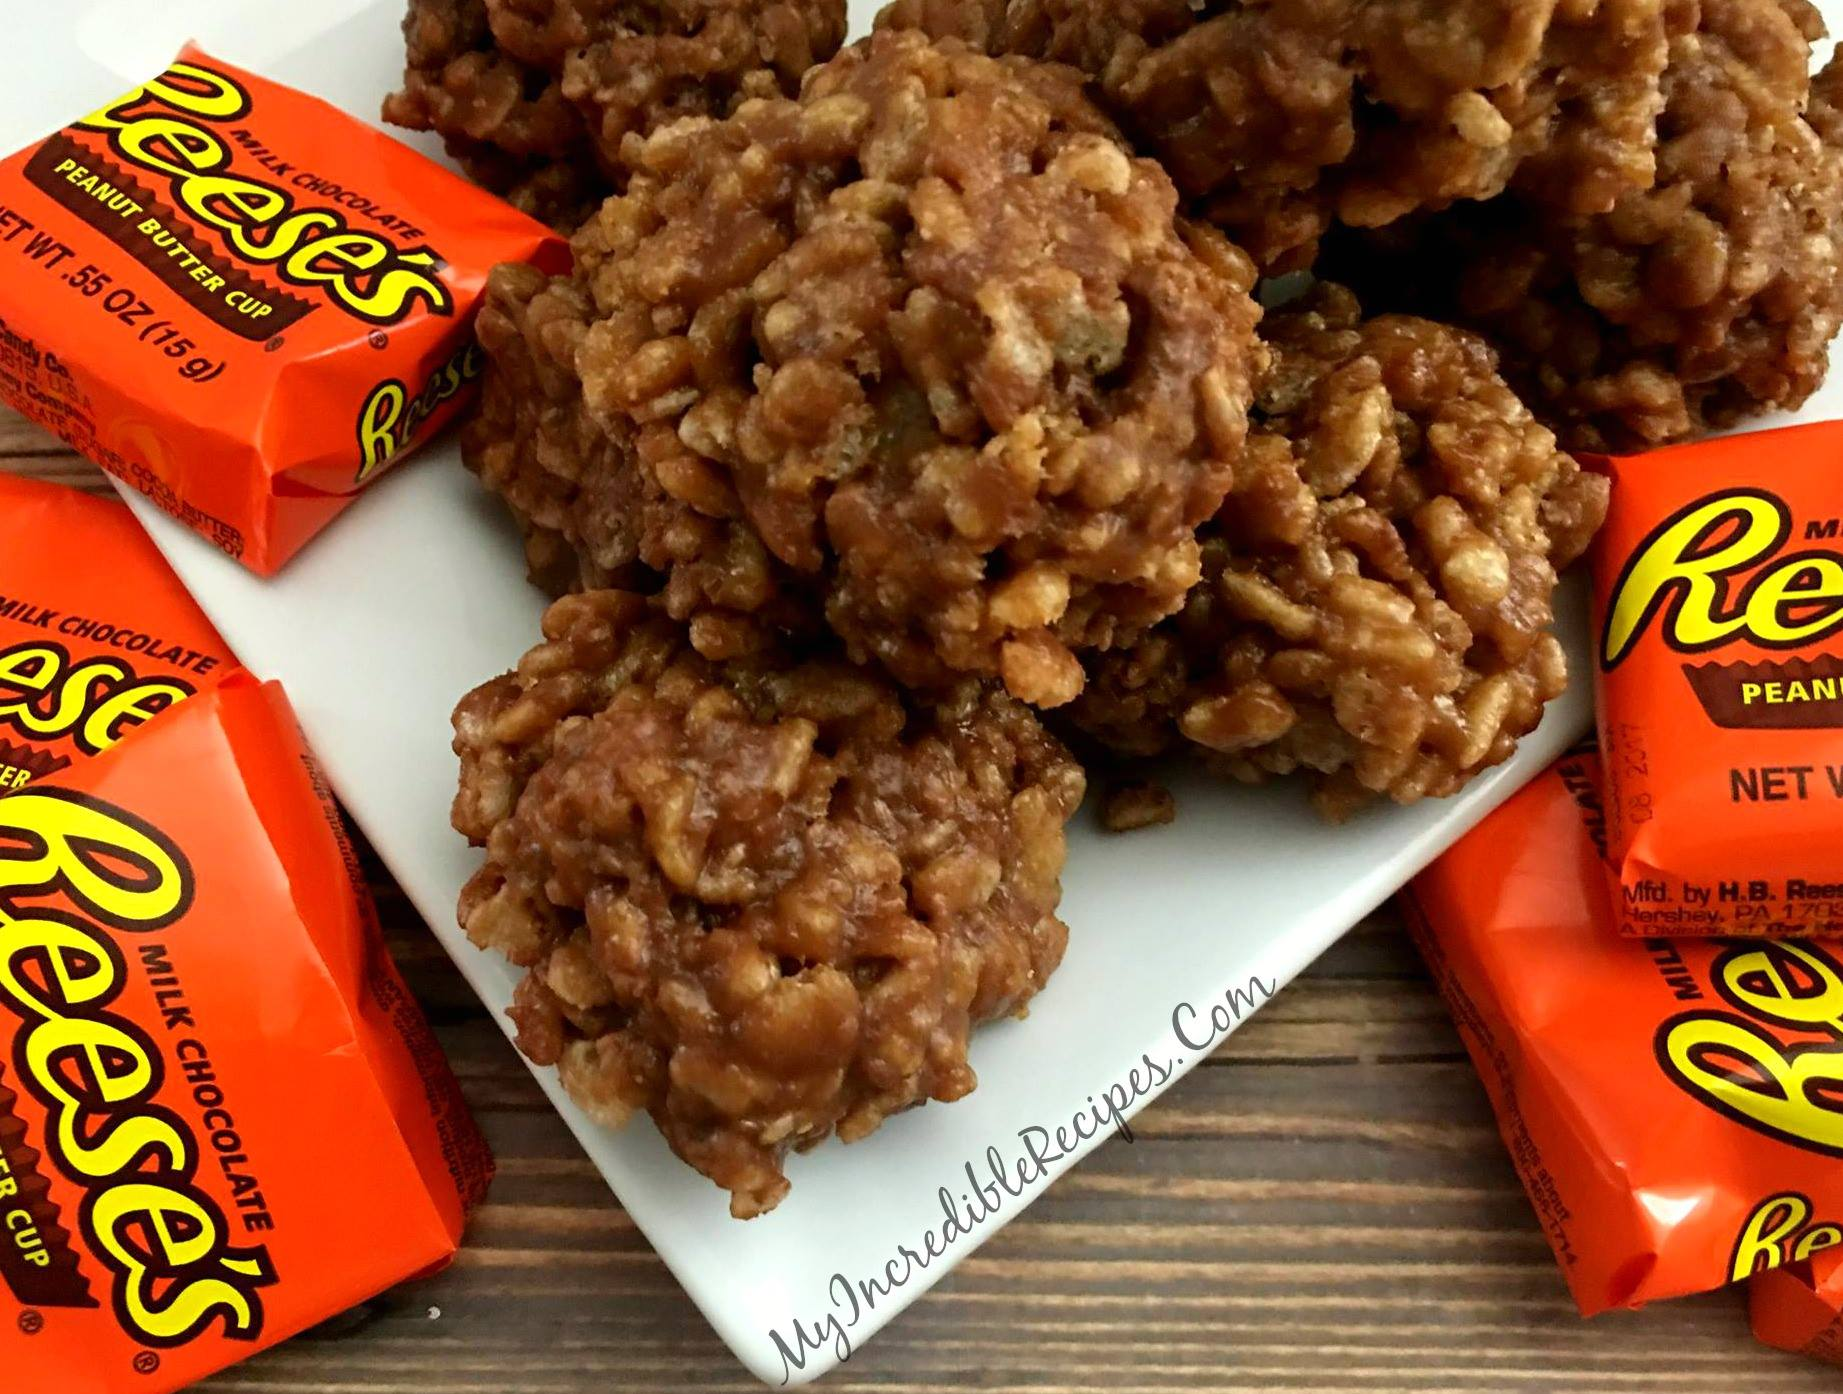 On the other end of the peanut butter spectrum, Reese's offer chocolate and peanut butter in a delectably smooth and arguably flawless combination. But sometimes we do just want a little crunch in our lives, but the type that won't stick to our teeth. That's exactly what you'll find in these  No-Bake Reese's Krispy Cookies . Plus, they're so easy you don't even have to use an oven. Nothing is better than the smoothness of chocolate peanut butter combined with the perfect crisp of Rice Krispies.